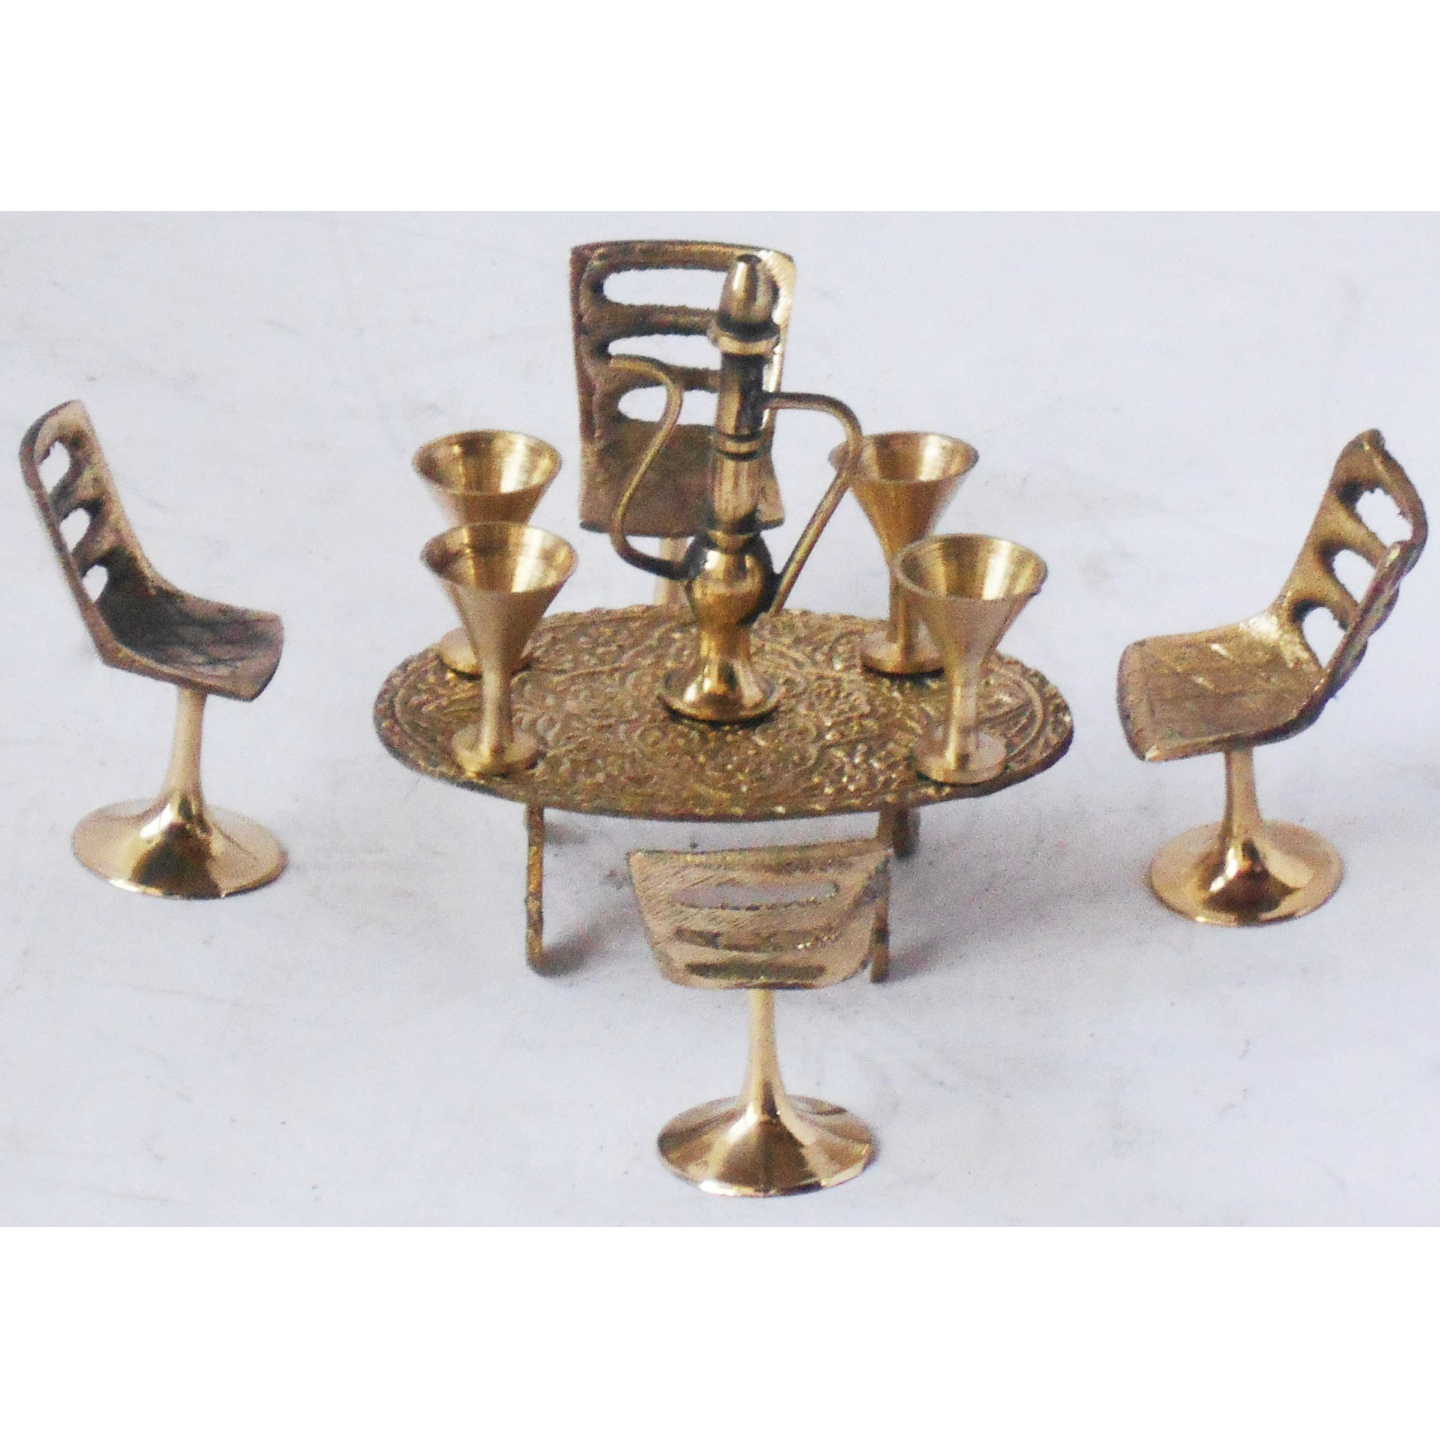 Brass Miniature Chair Table Cup Set 10 PCs Set Toy for Children Playing Z355 C